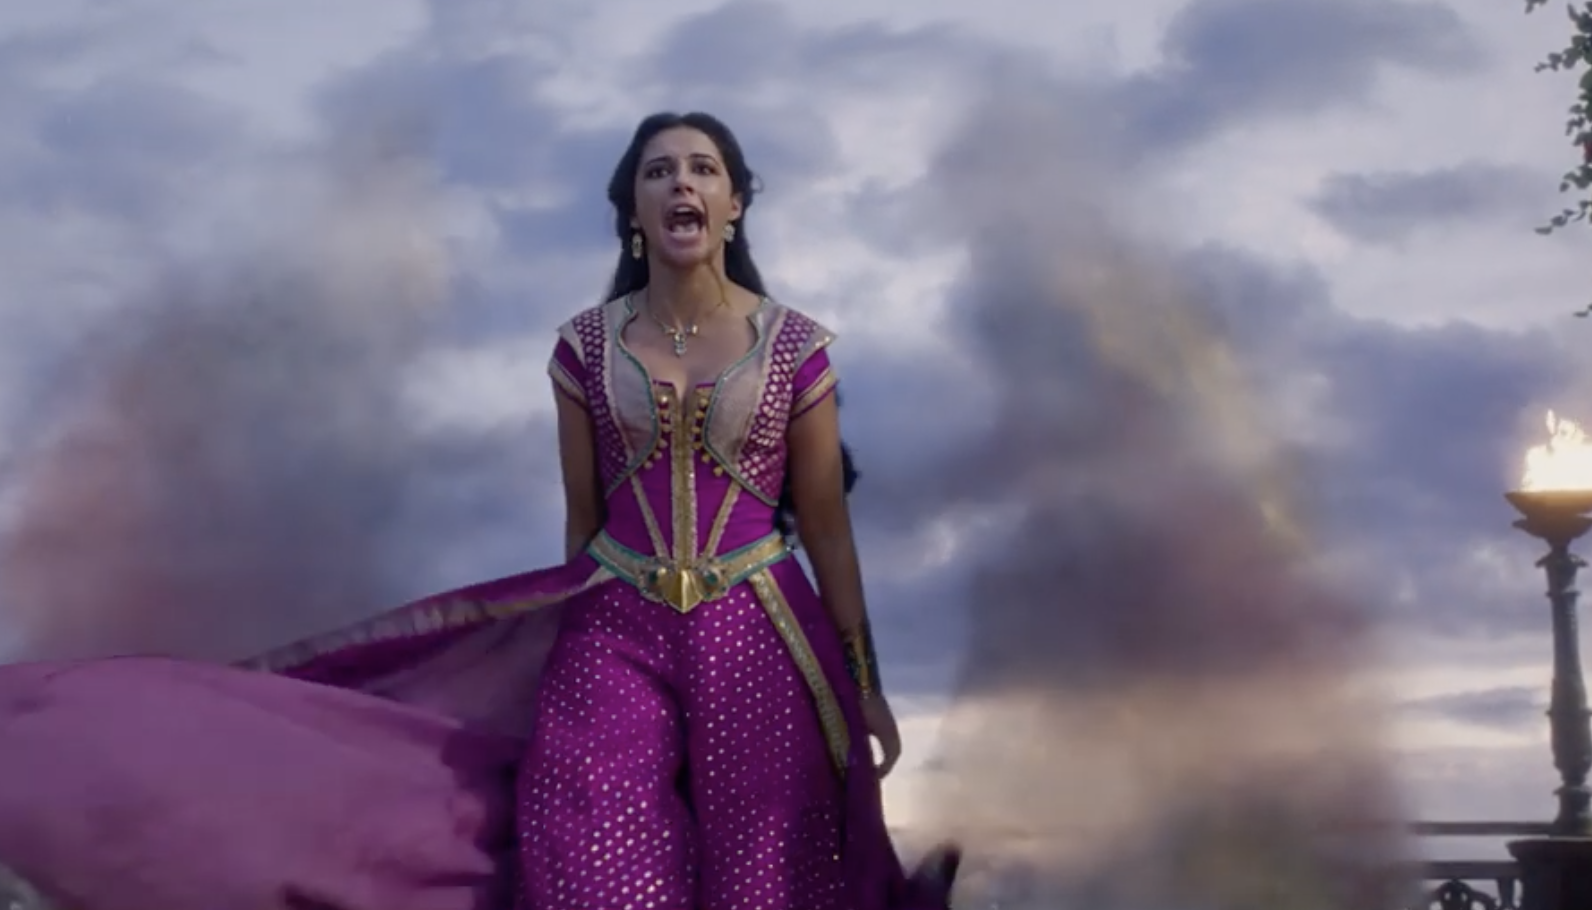 Aladdin: Disney Releases Clip Of One Of The Film's Standout Moments